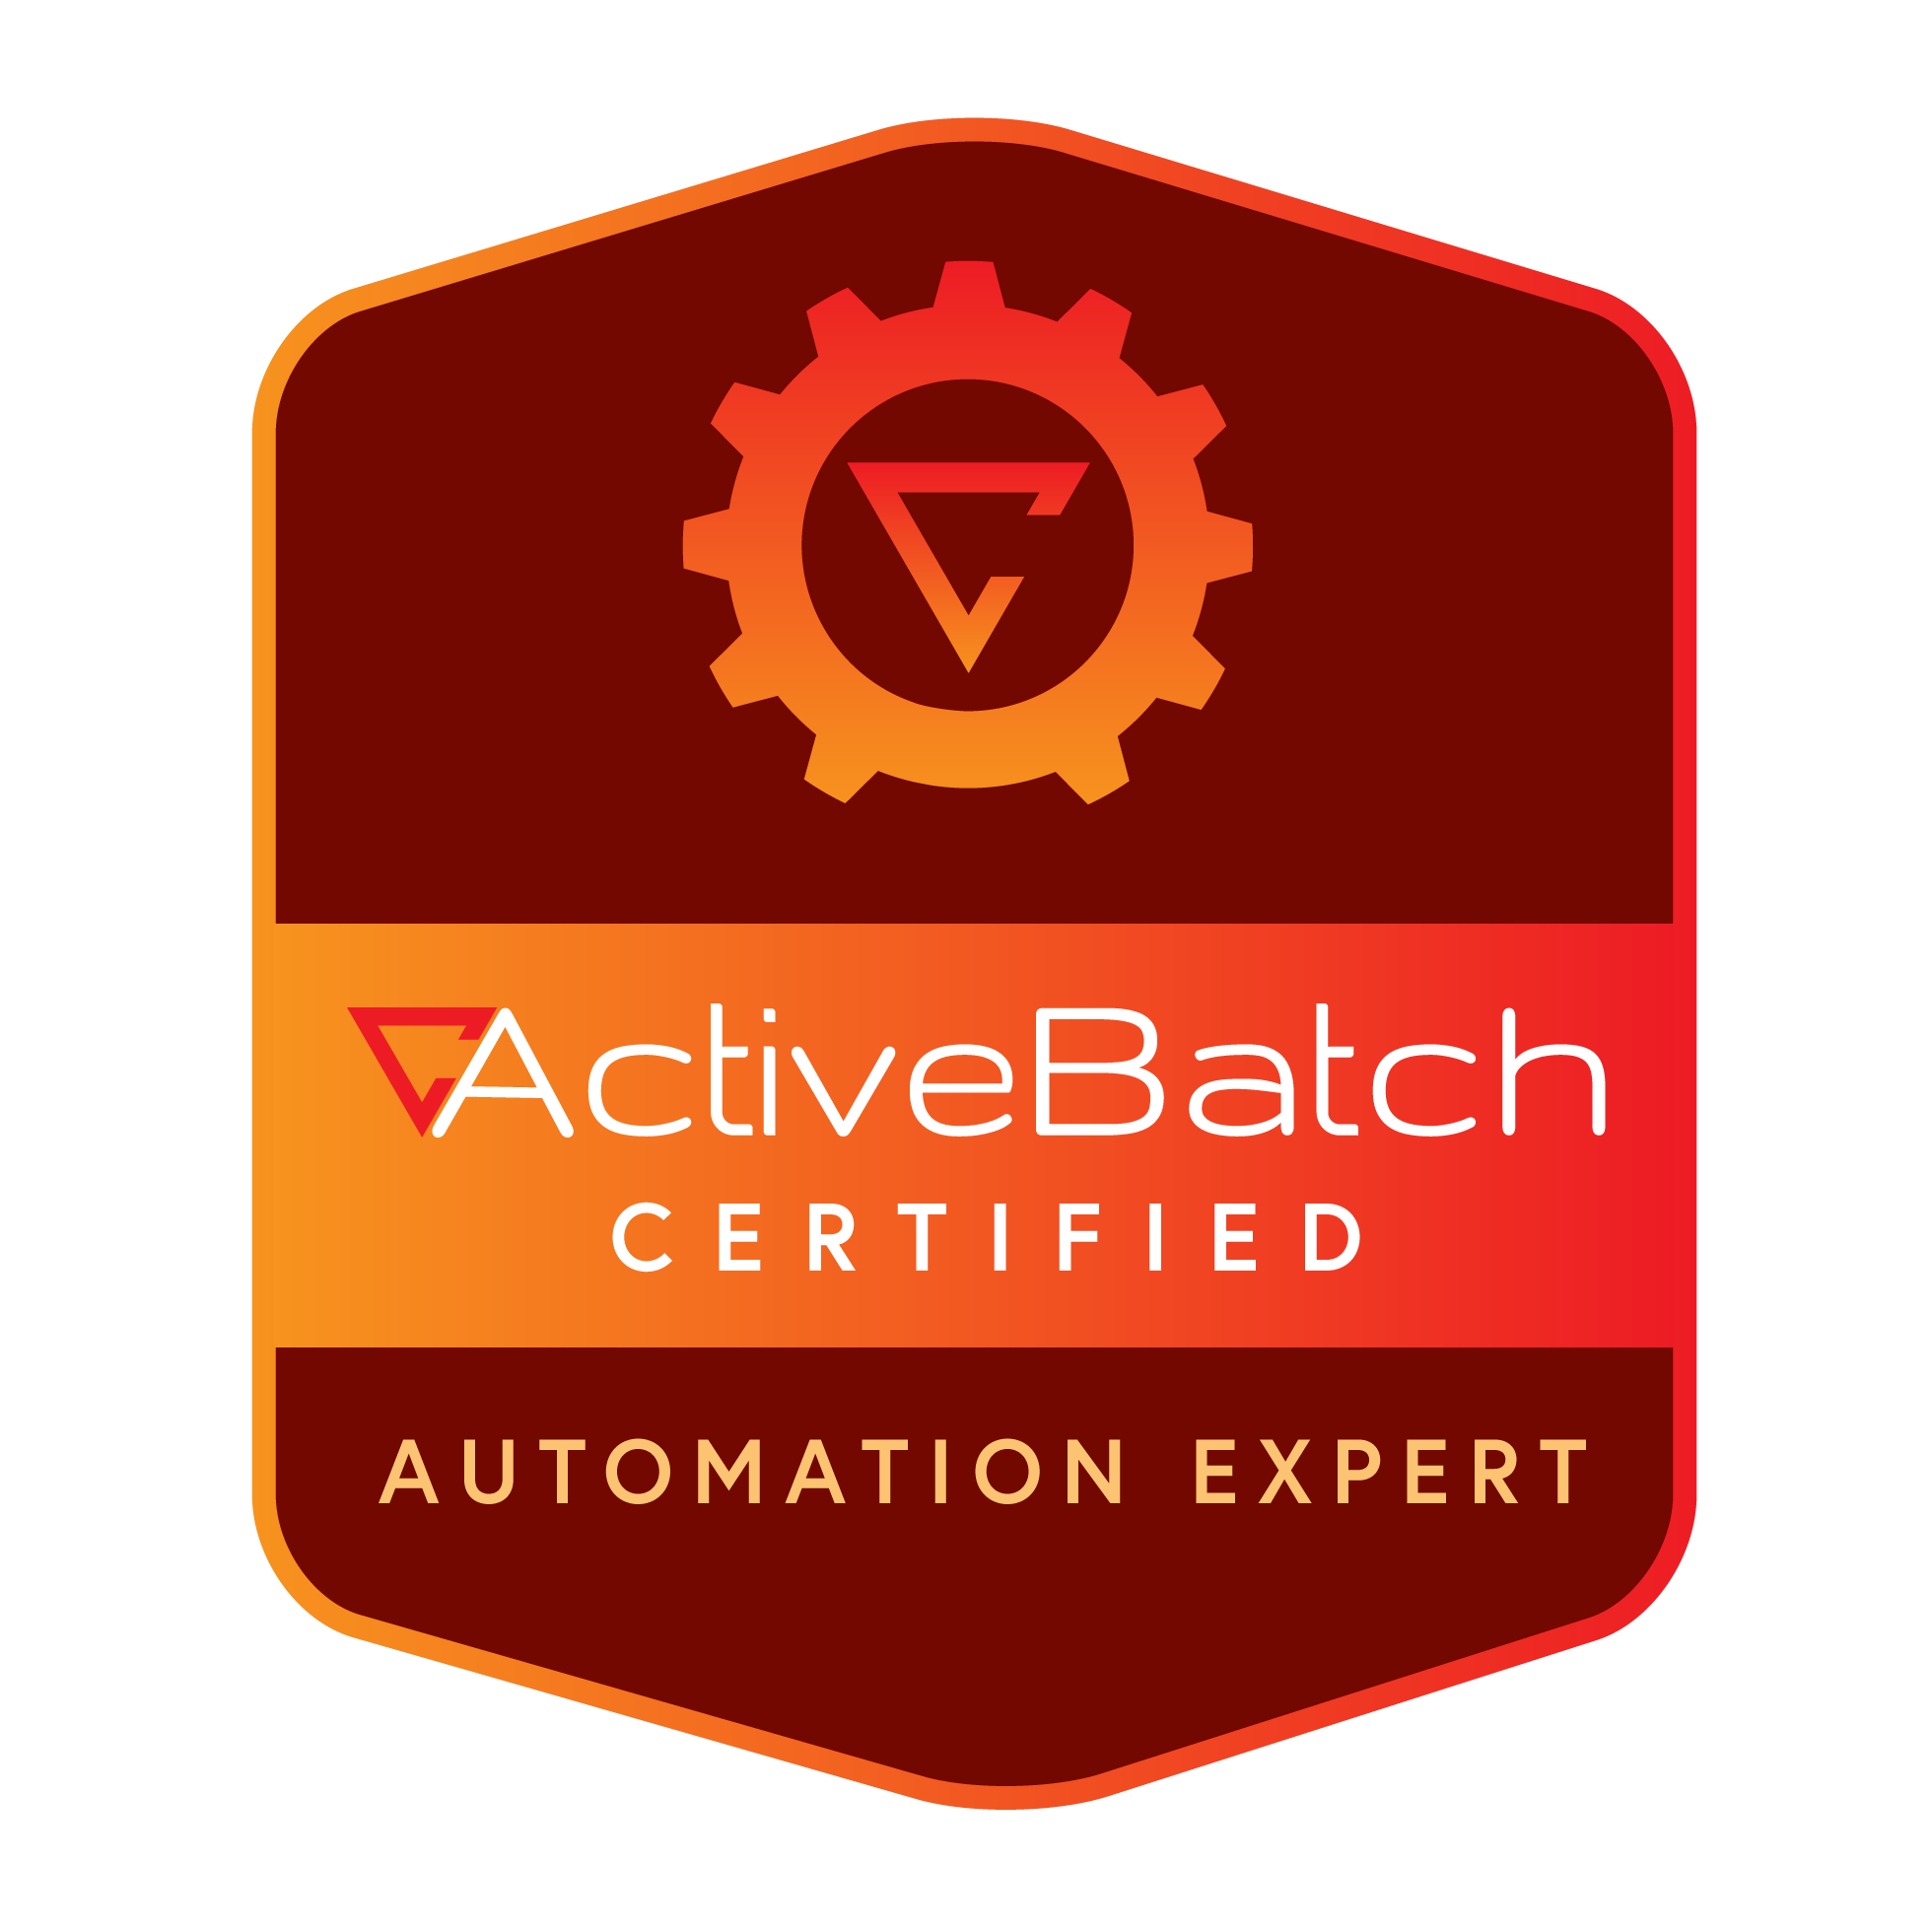 ActiveBatch Certified Automation Expert